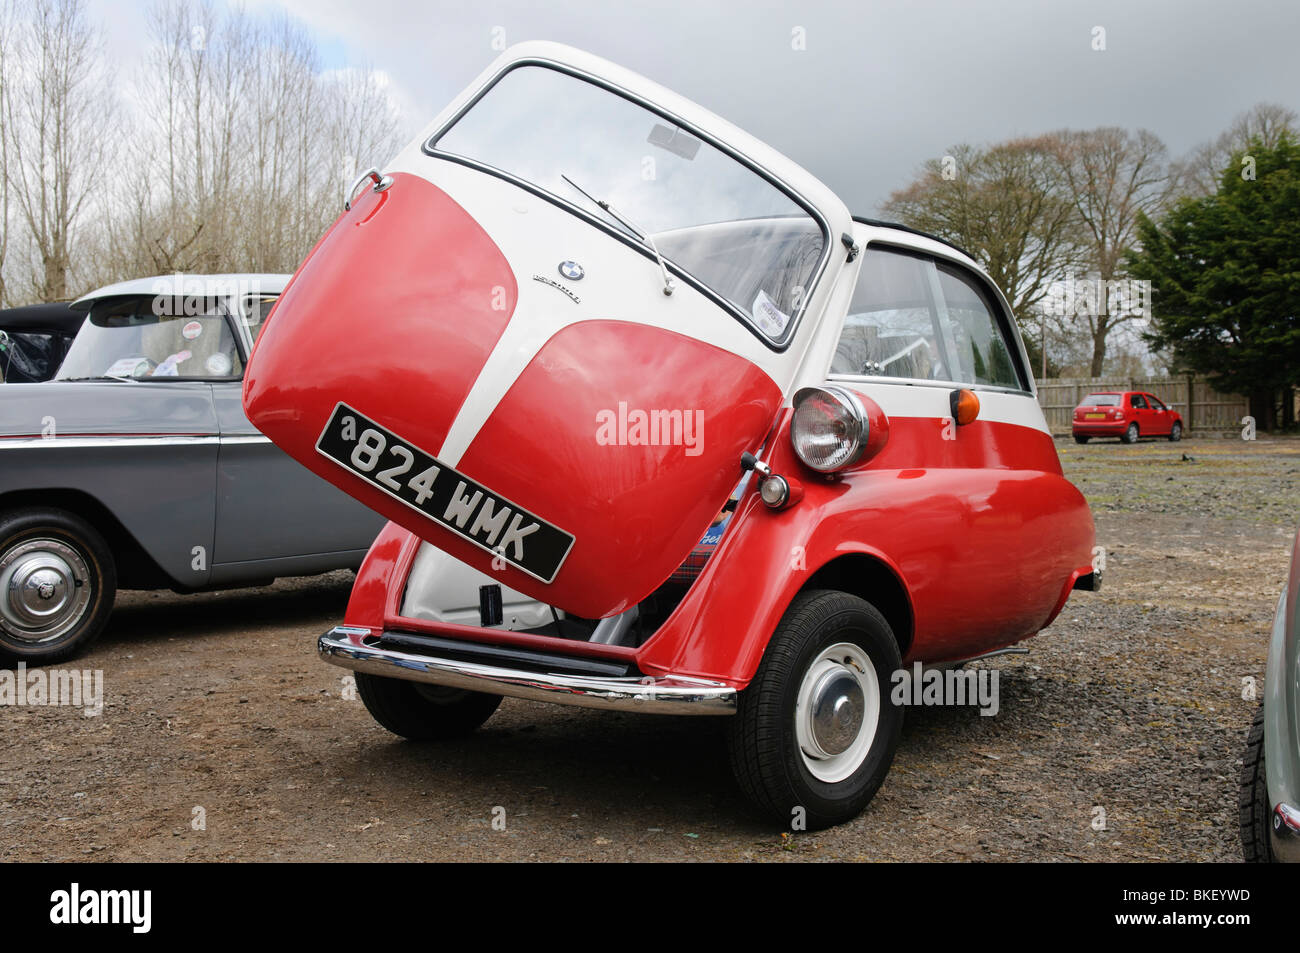 Bubble Car With Door Open Stock Photos Bubble Car With Door Open